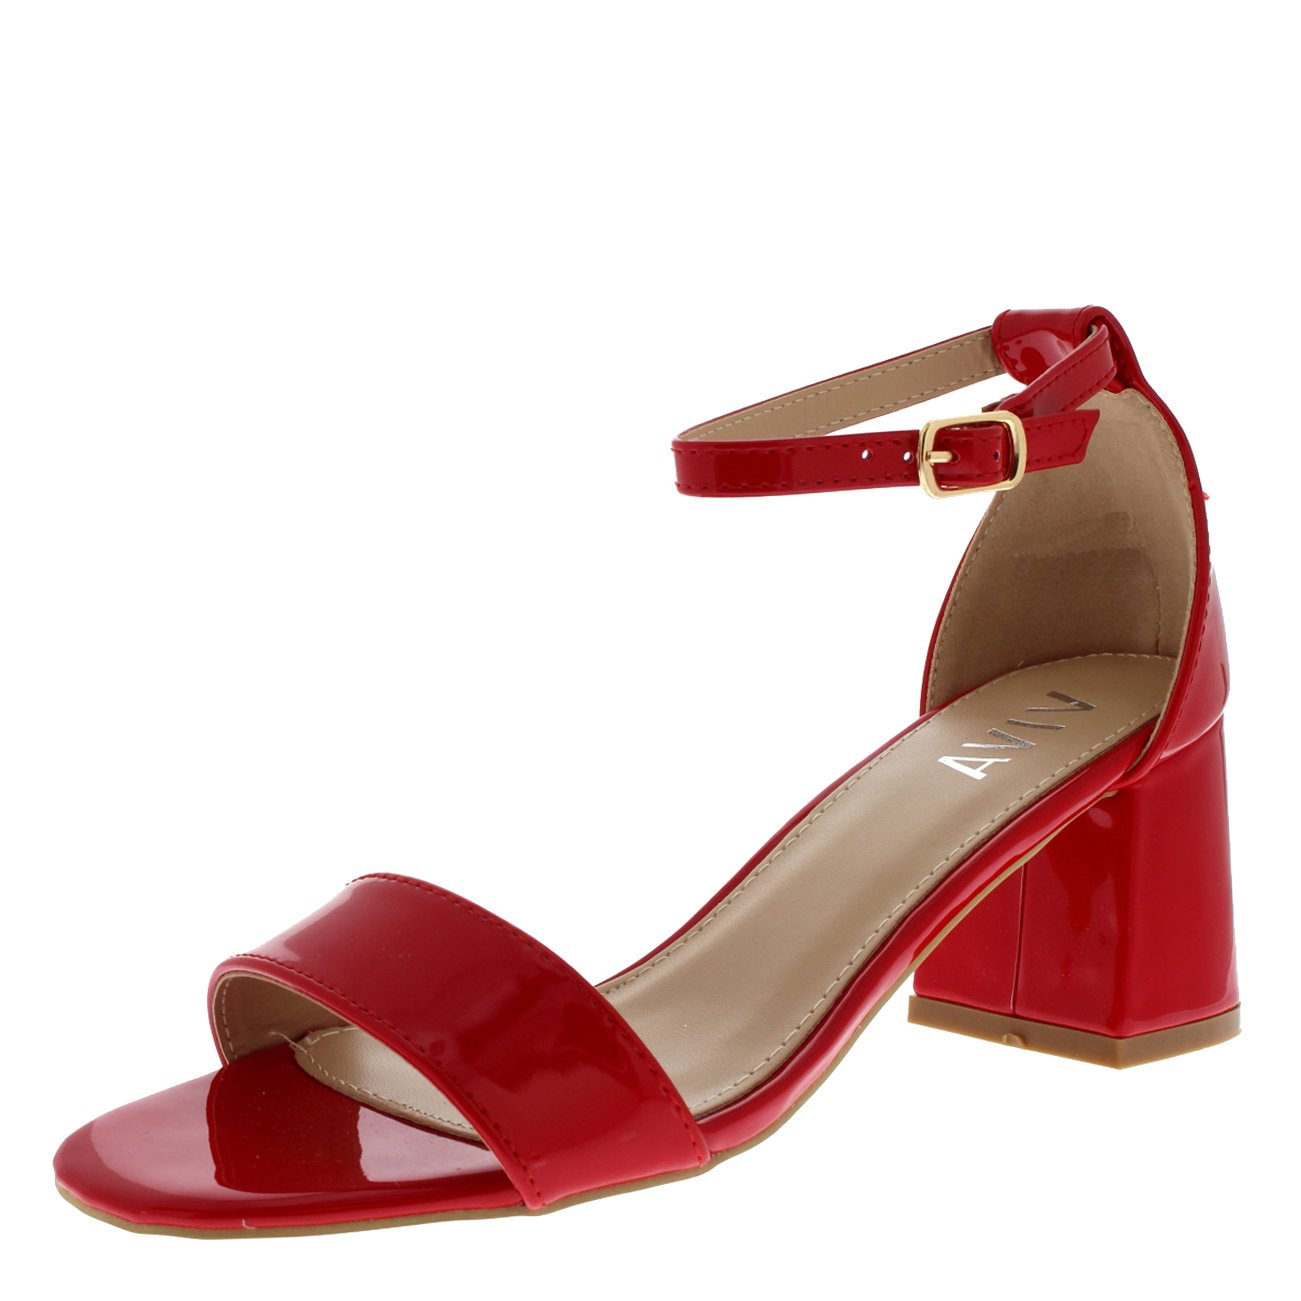 8a288862e35 Womens Sandal Cut Out Block Heel Open Toe Barely There Ankle Strap Heels